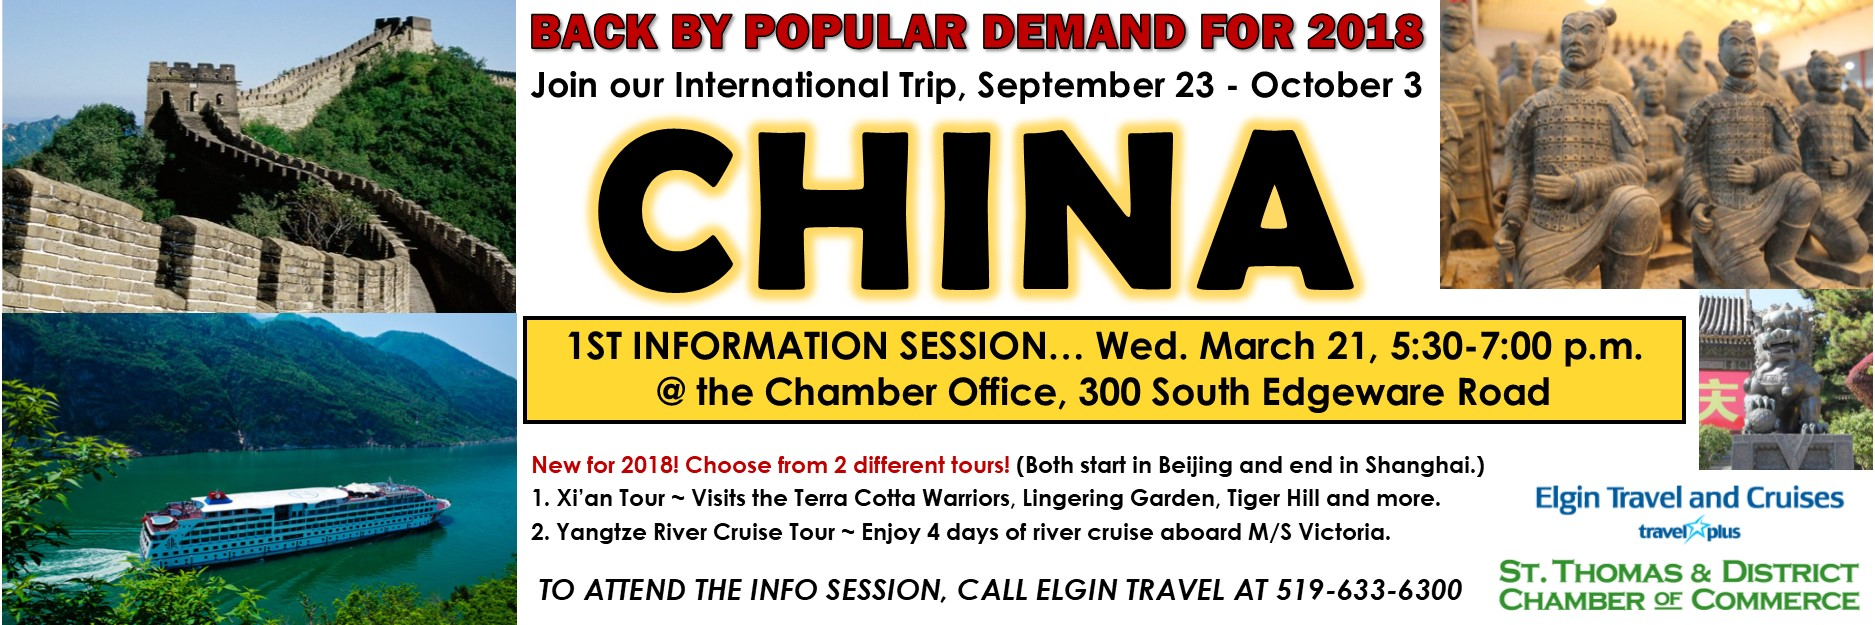 China-Info-Session-1---banner.jpg